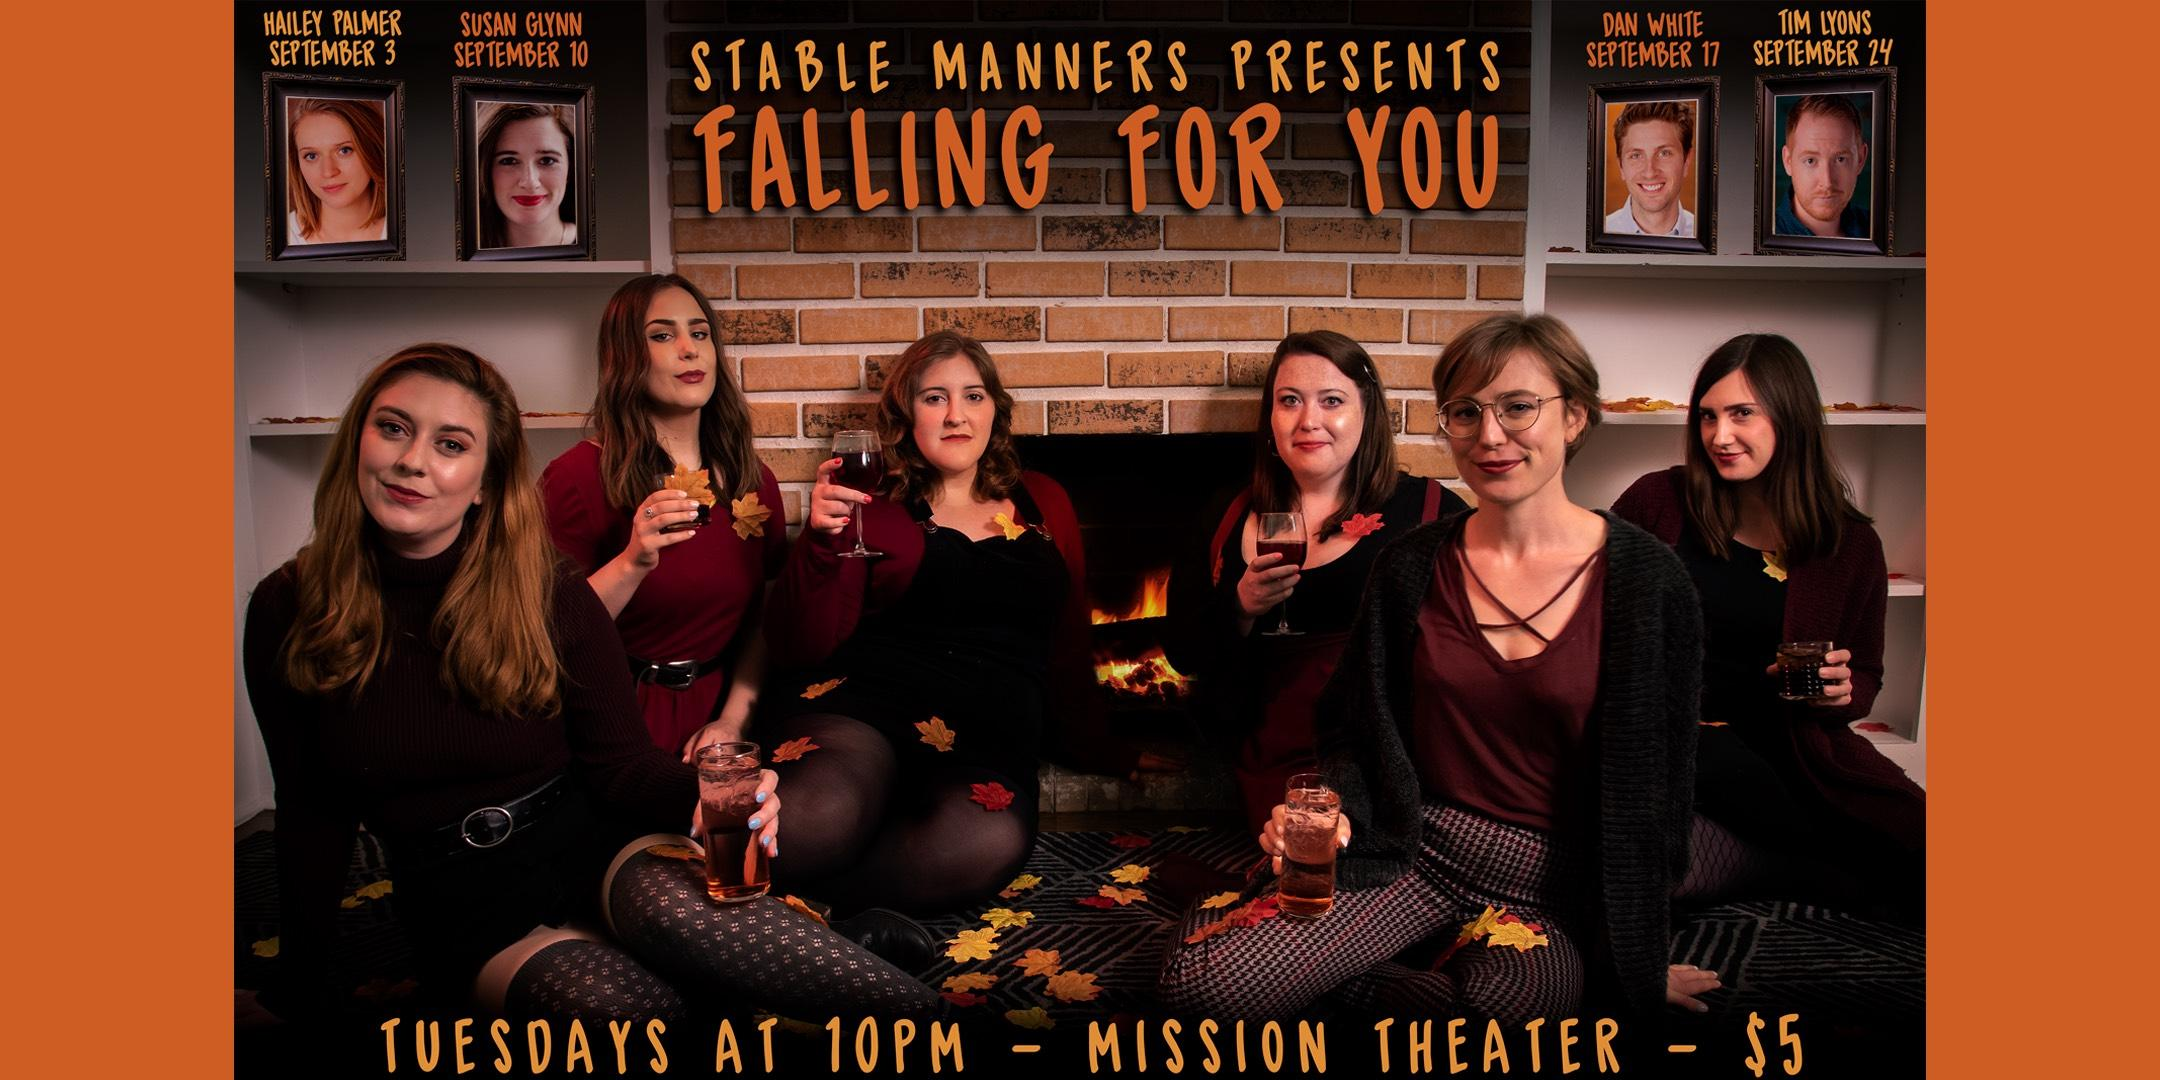 Stable Manners Presents: Falling For You, feat. Tim Lyons